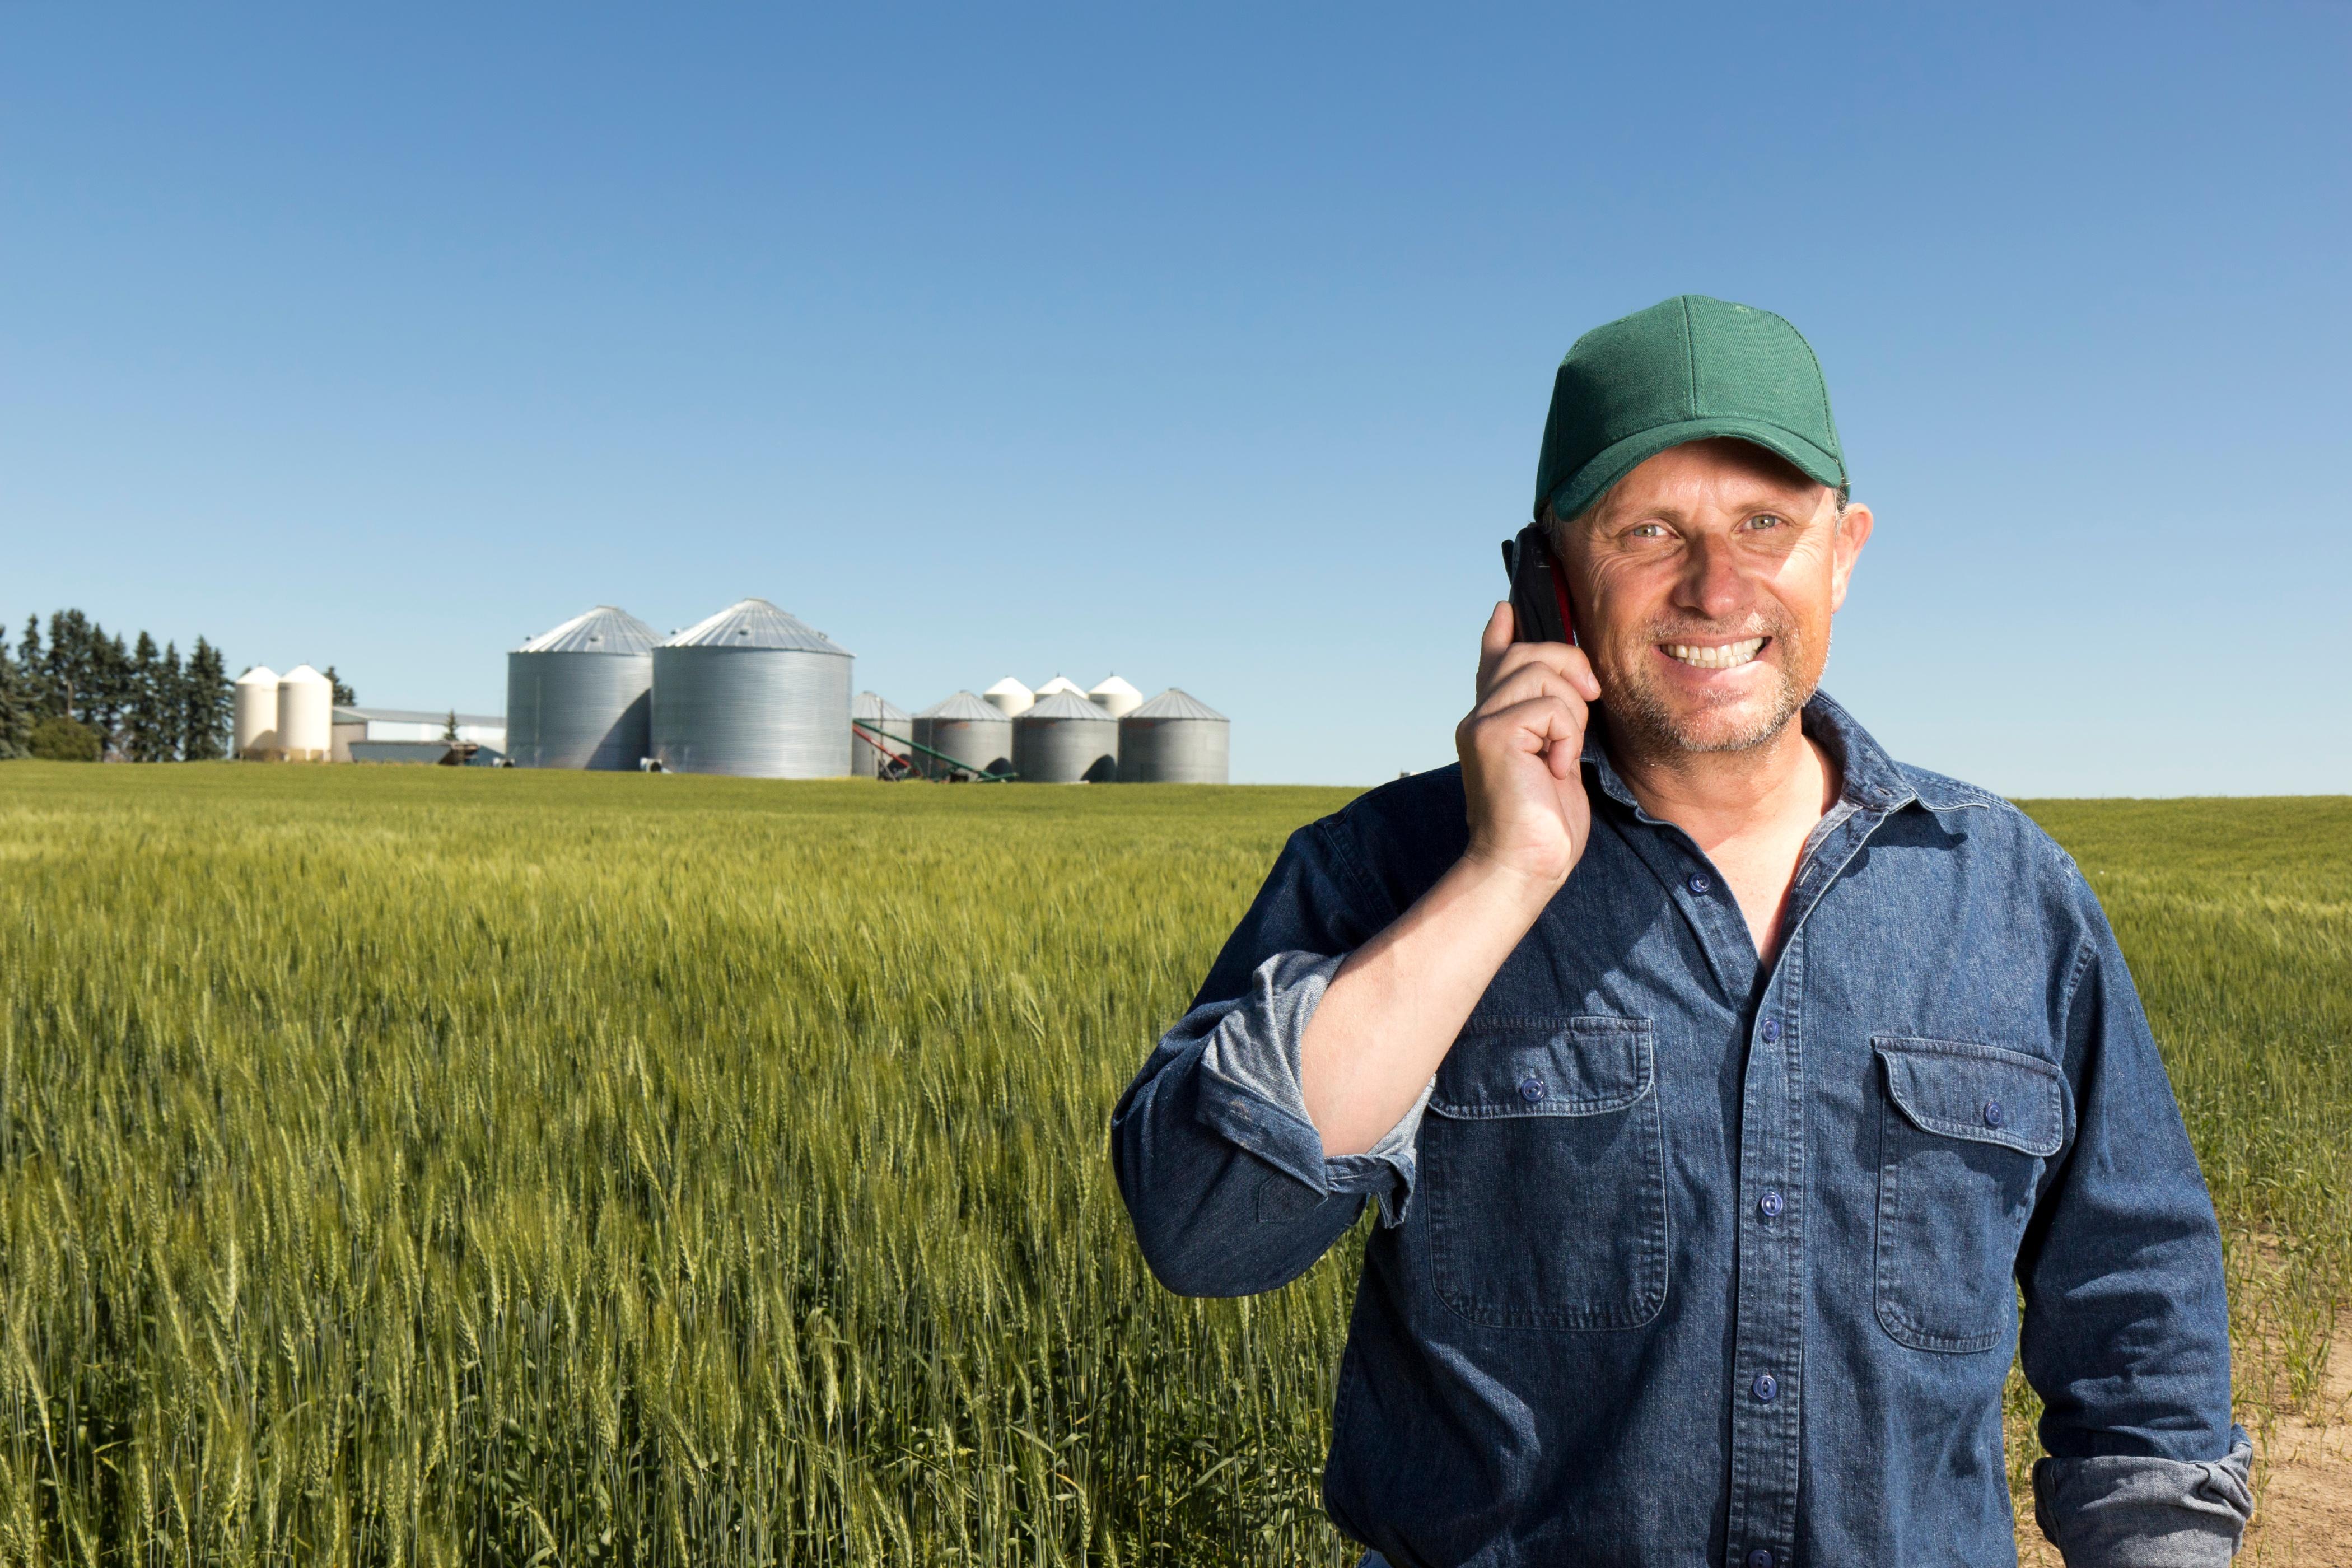 farmer talking in field.jpg